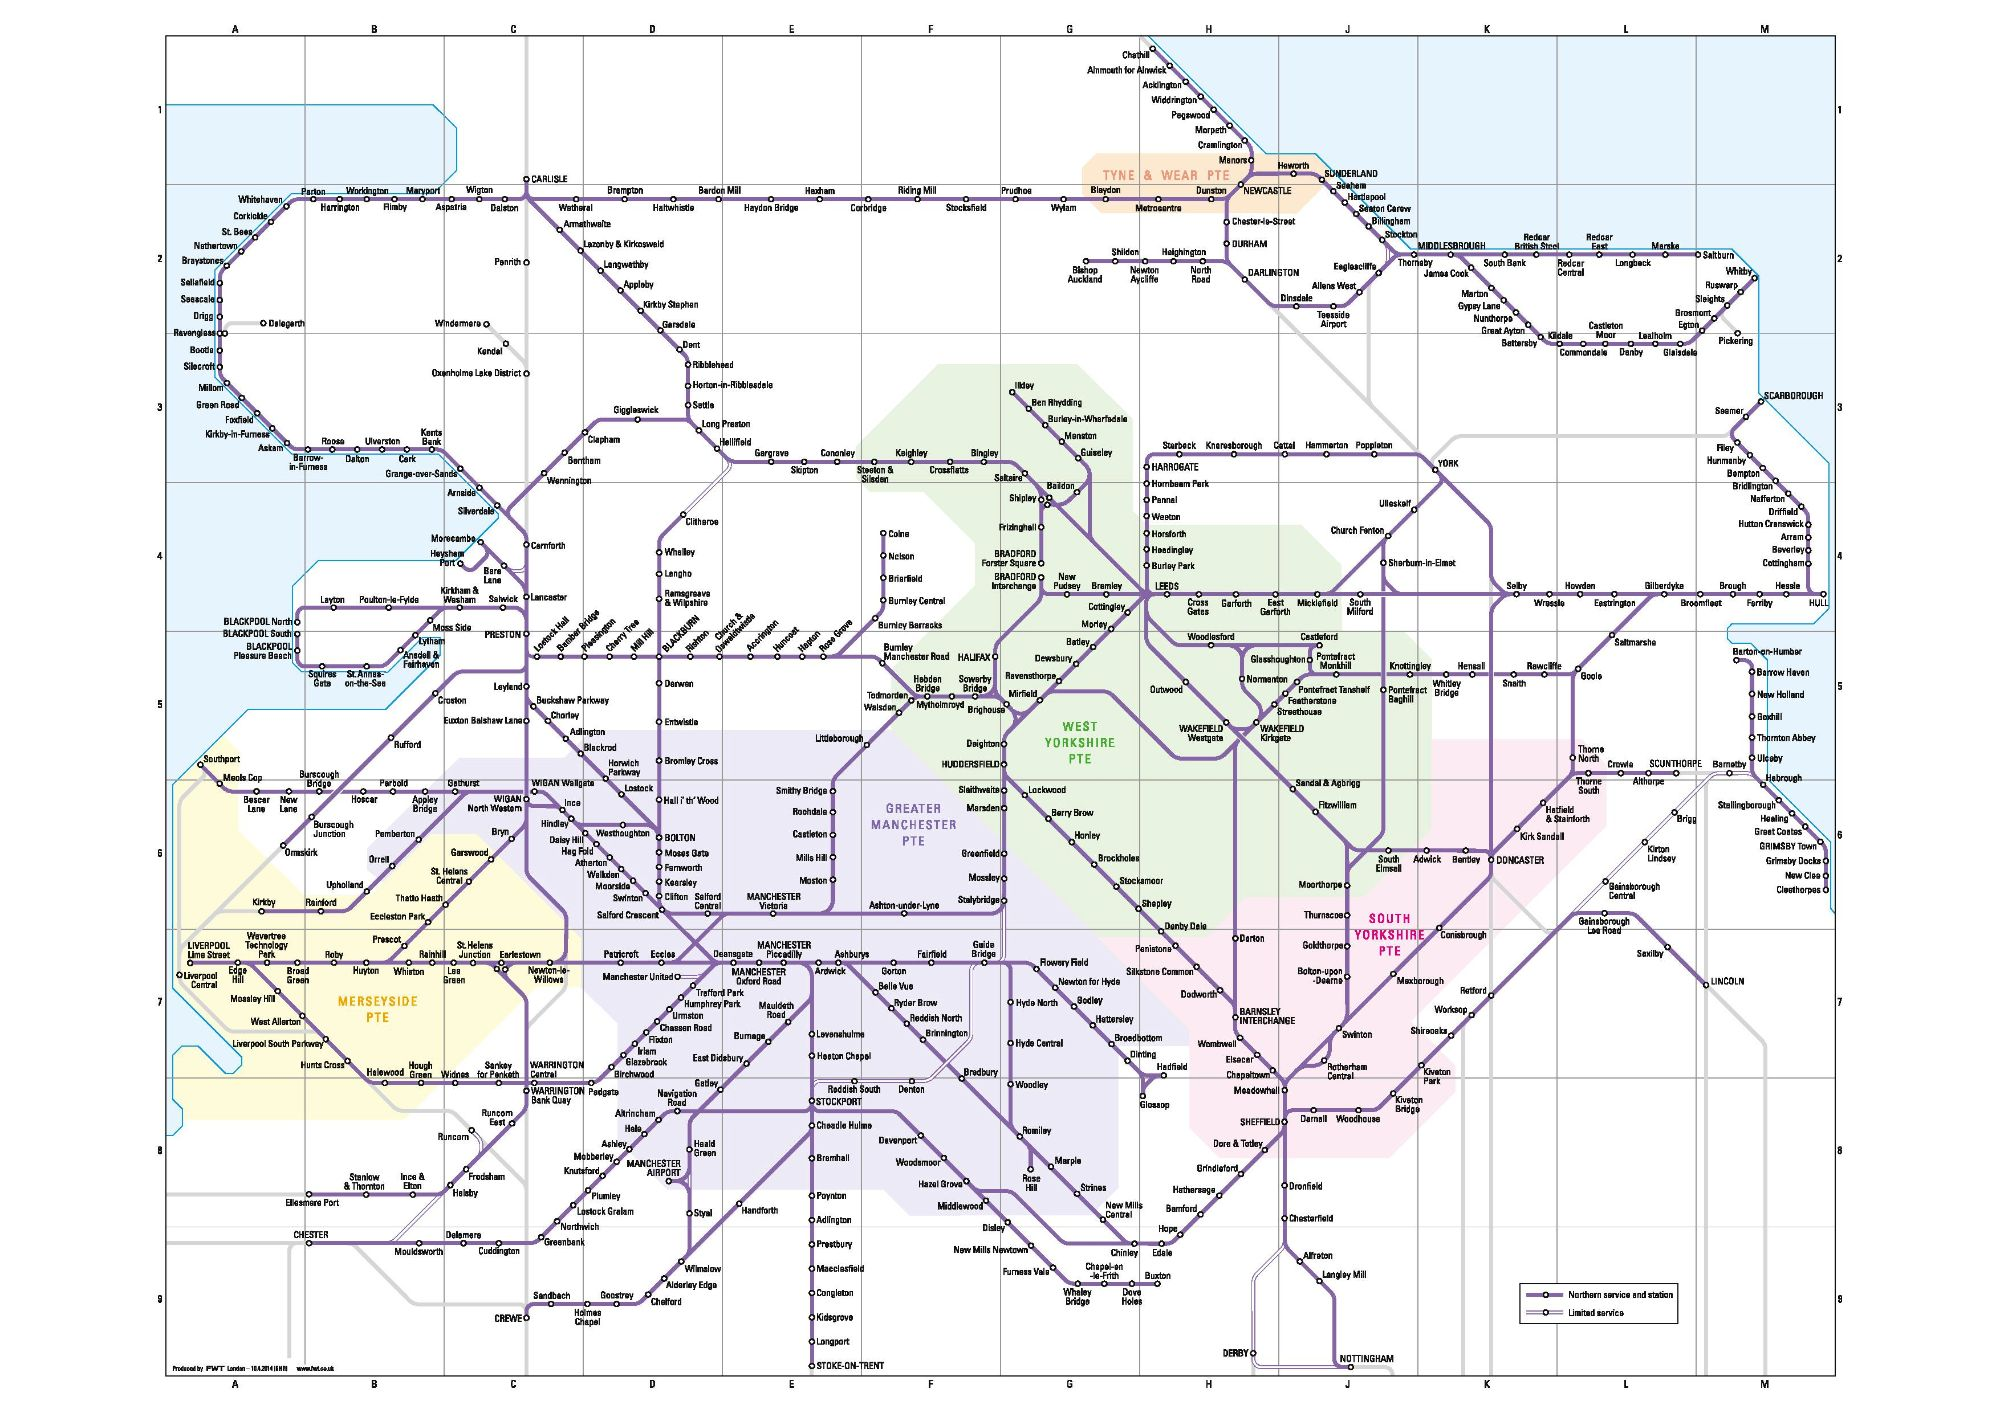 Image showing the Northern Rail route map circa 2015.